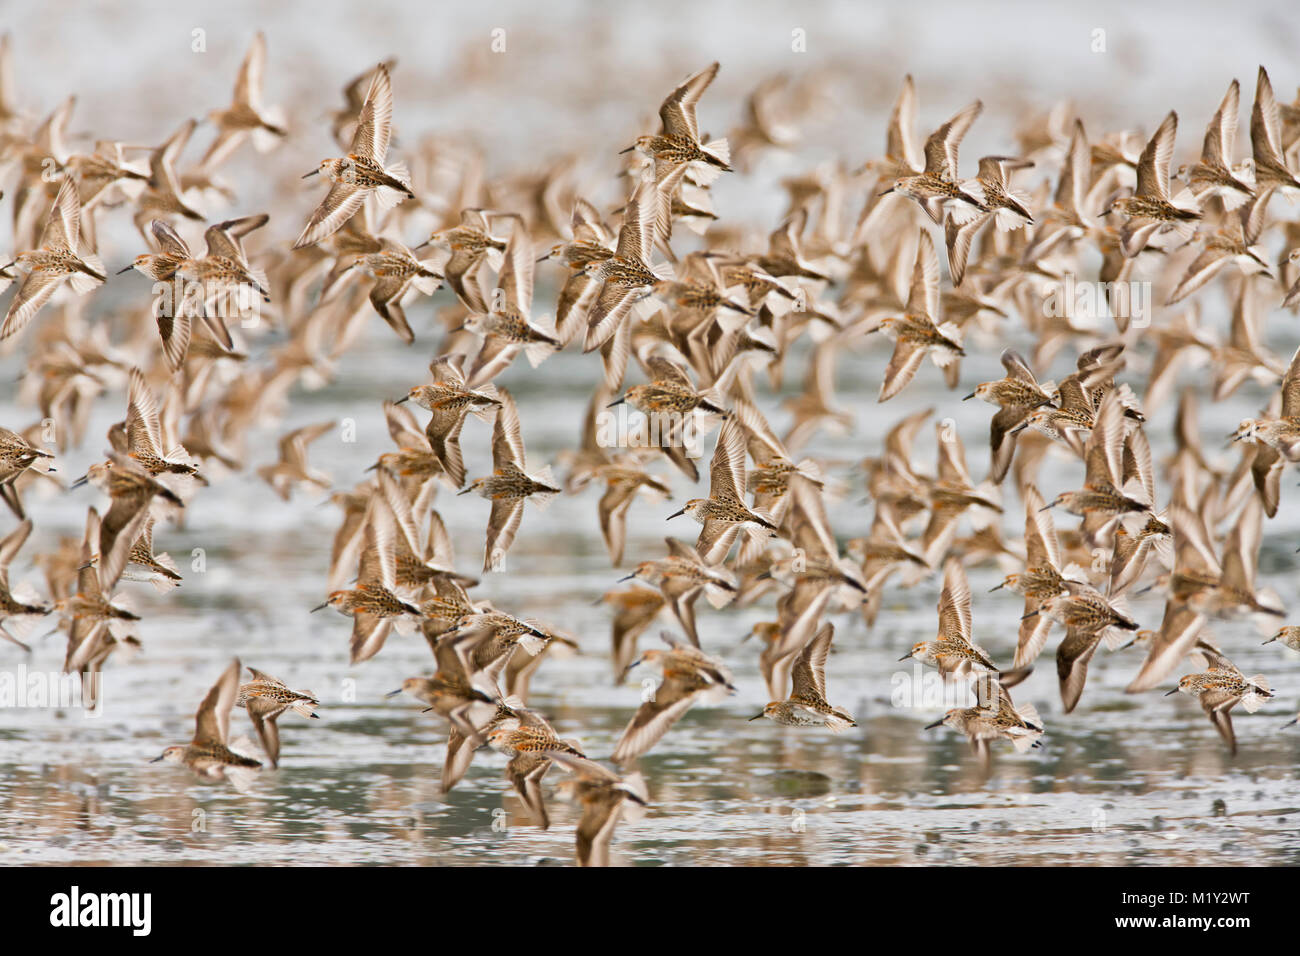 Western Sandpipers swarm the waters of Hartney Bay near Cordova in Alaska during the spring migration. - Stock Image